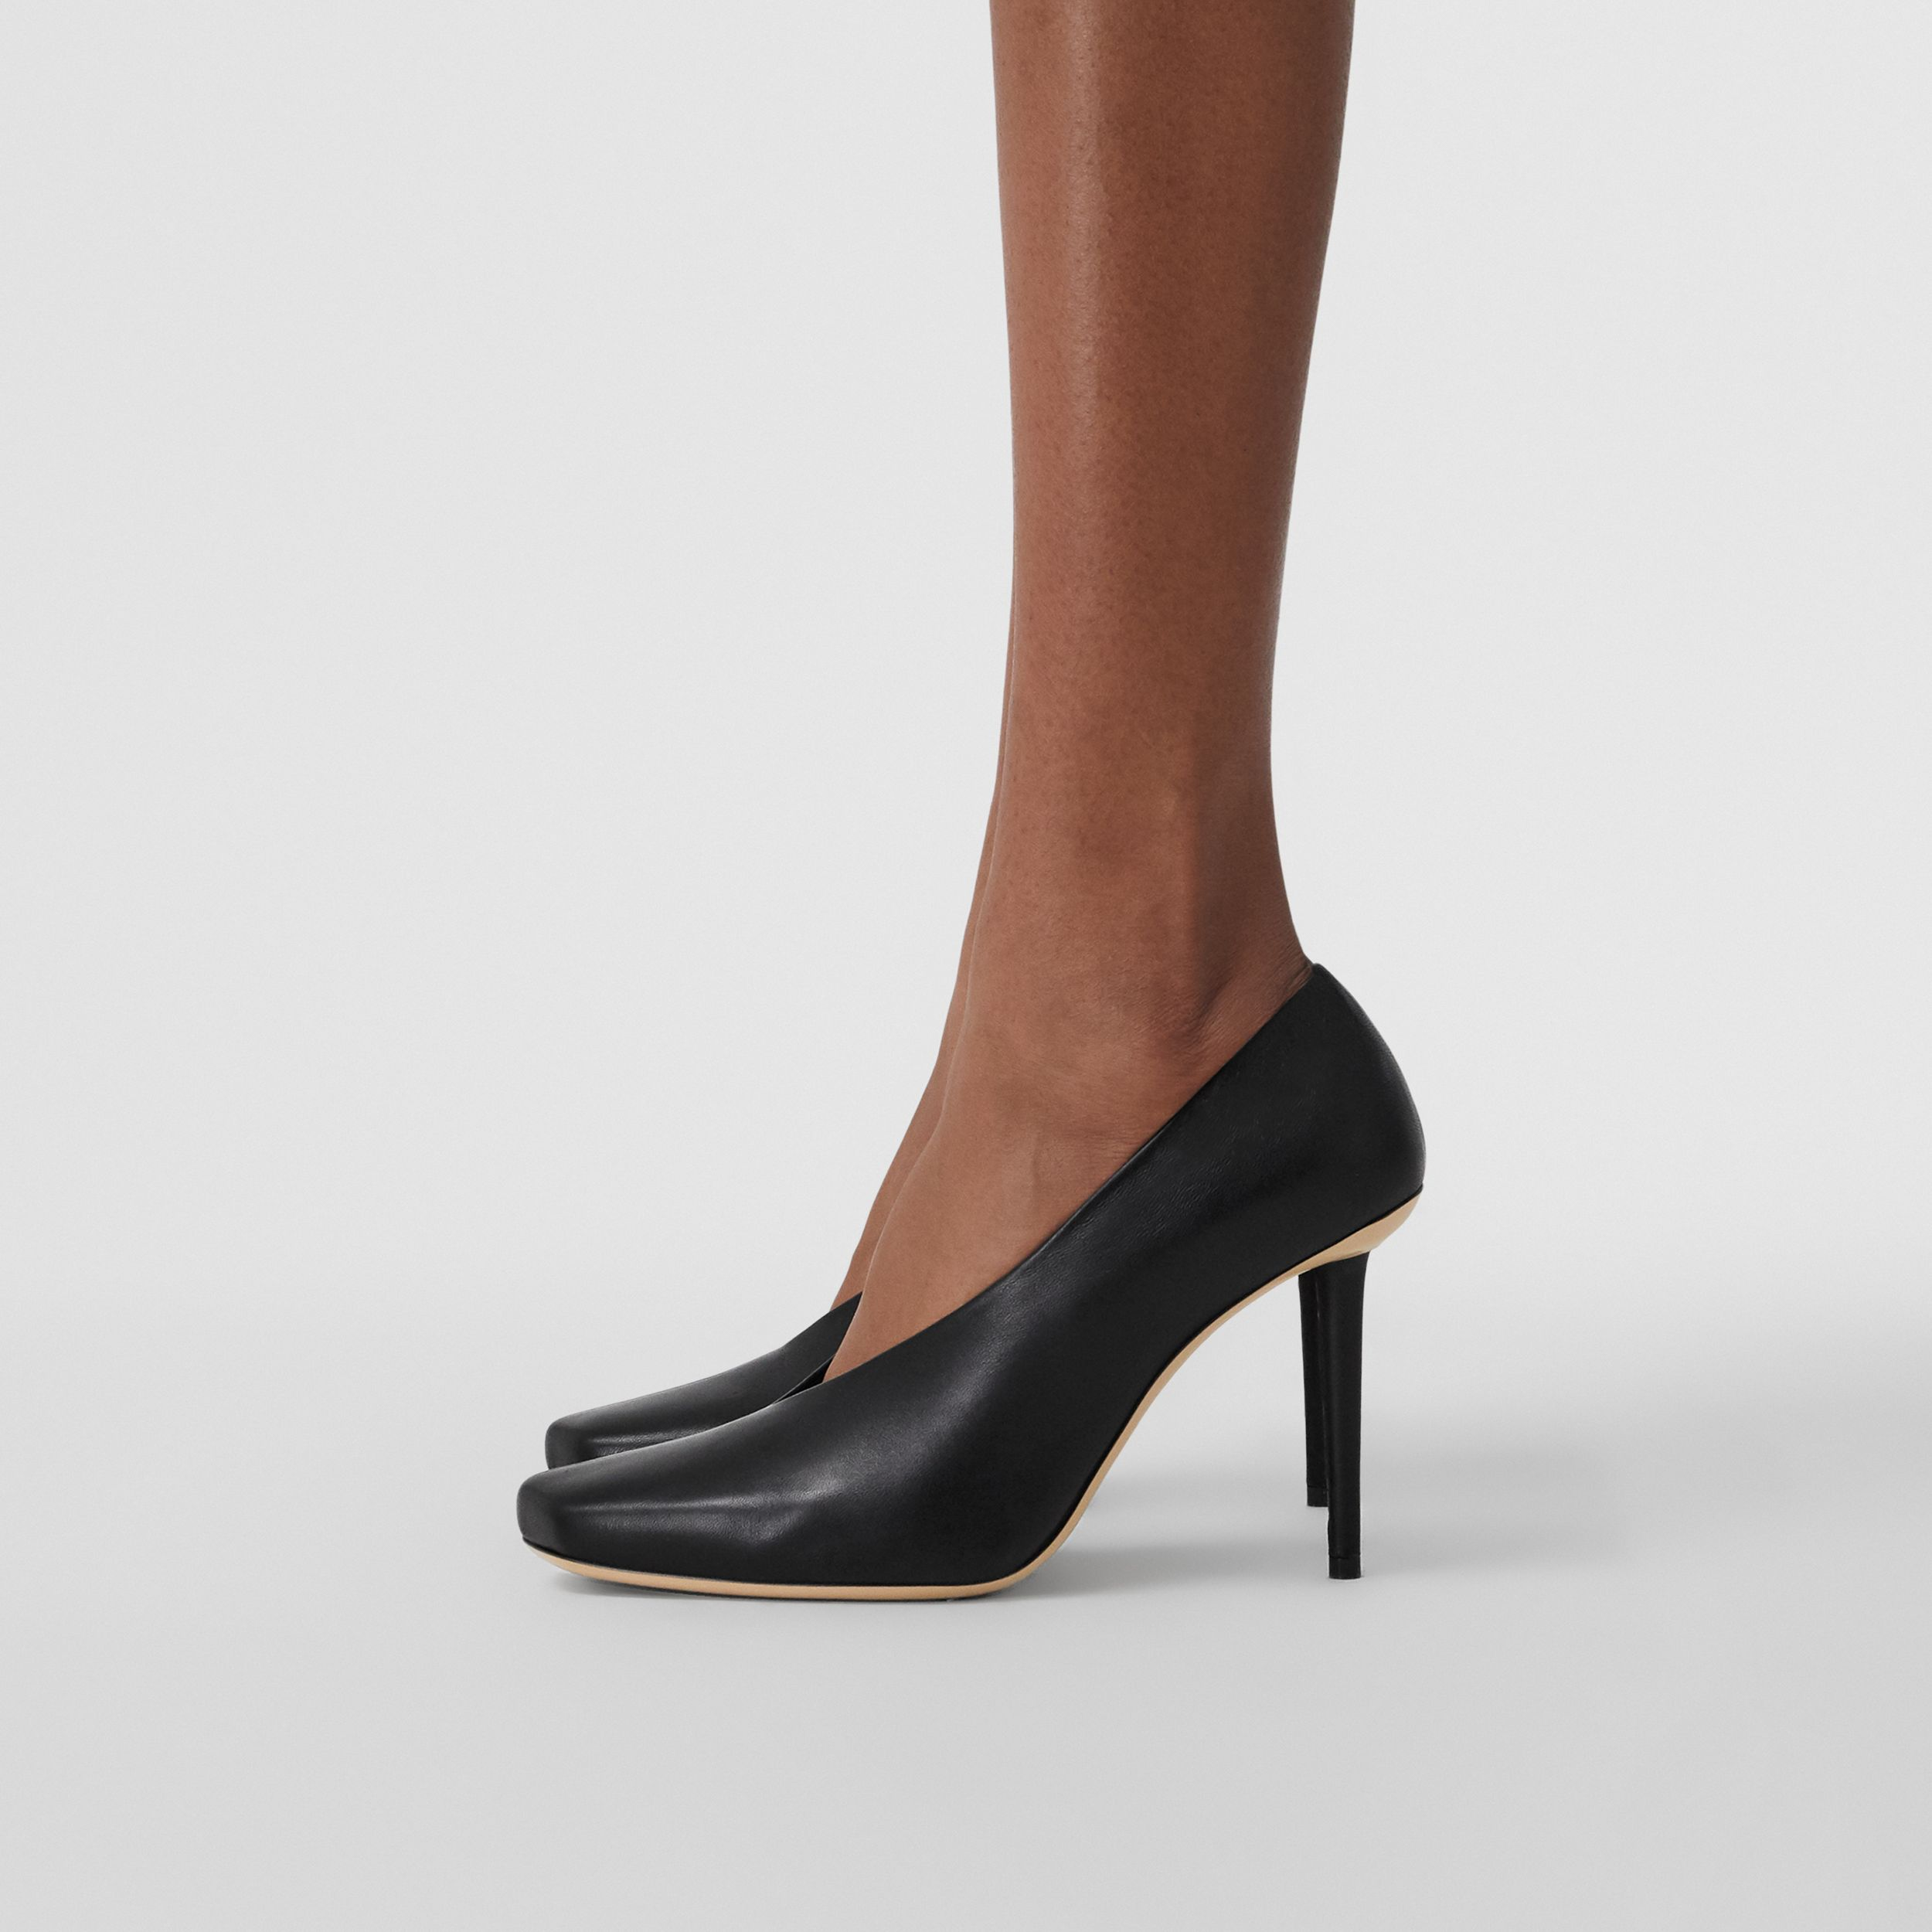 Lambskin Sculptural Pumps in Black - Women | Burberry - 3